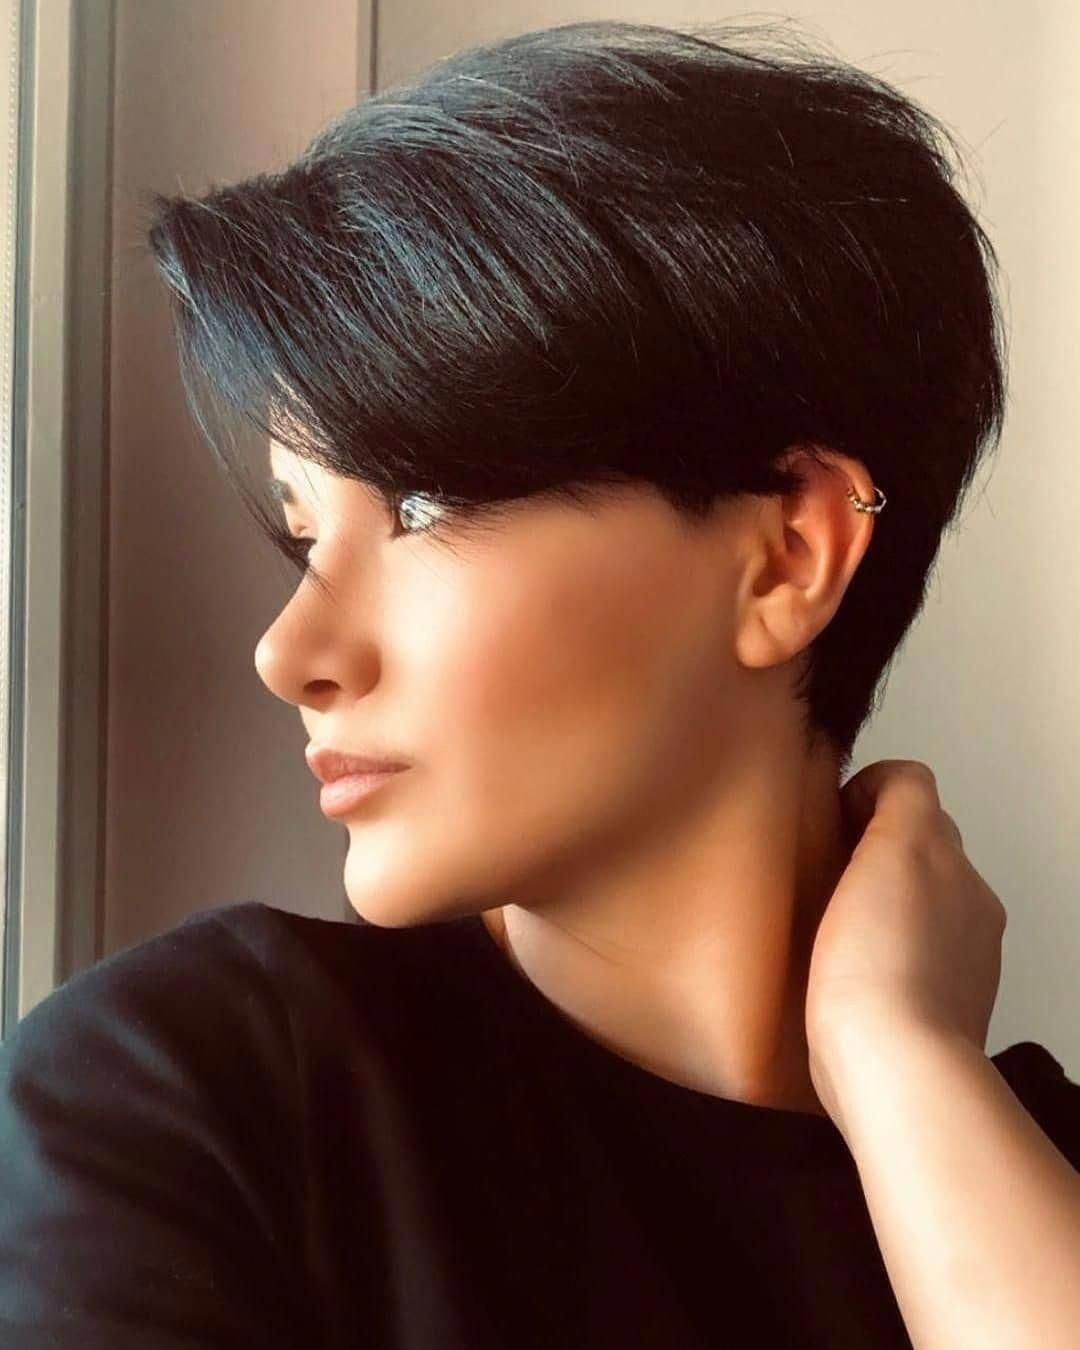 60 der schönsten Short Frisuren auf Instagram (März 2019) in 2020 | Short  hair styles, Thick hair styles, Hair styles